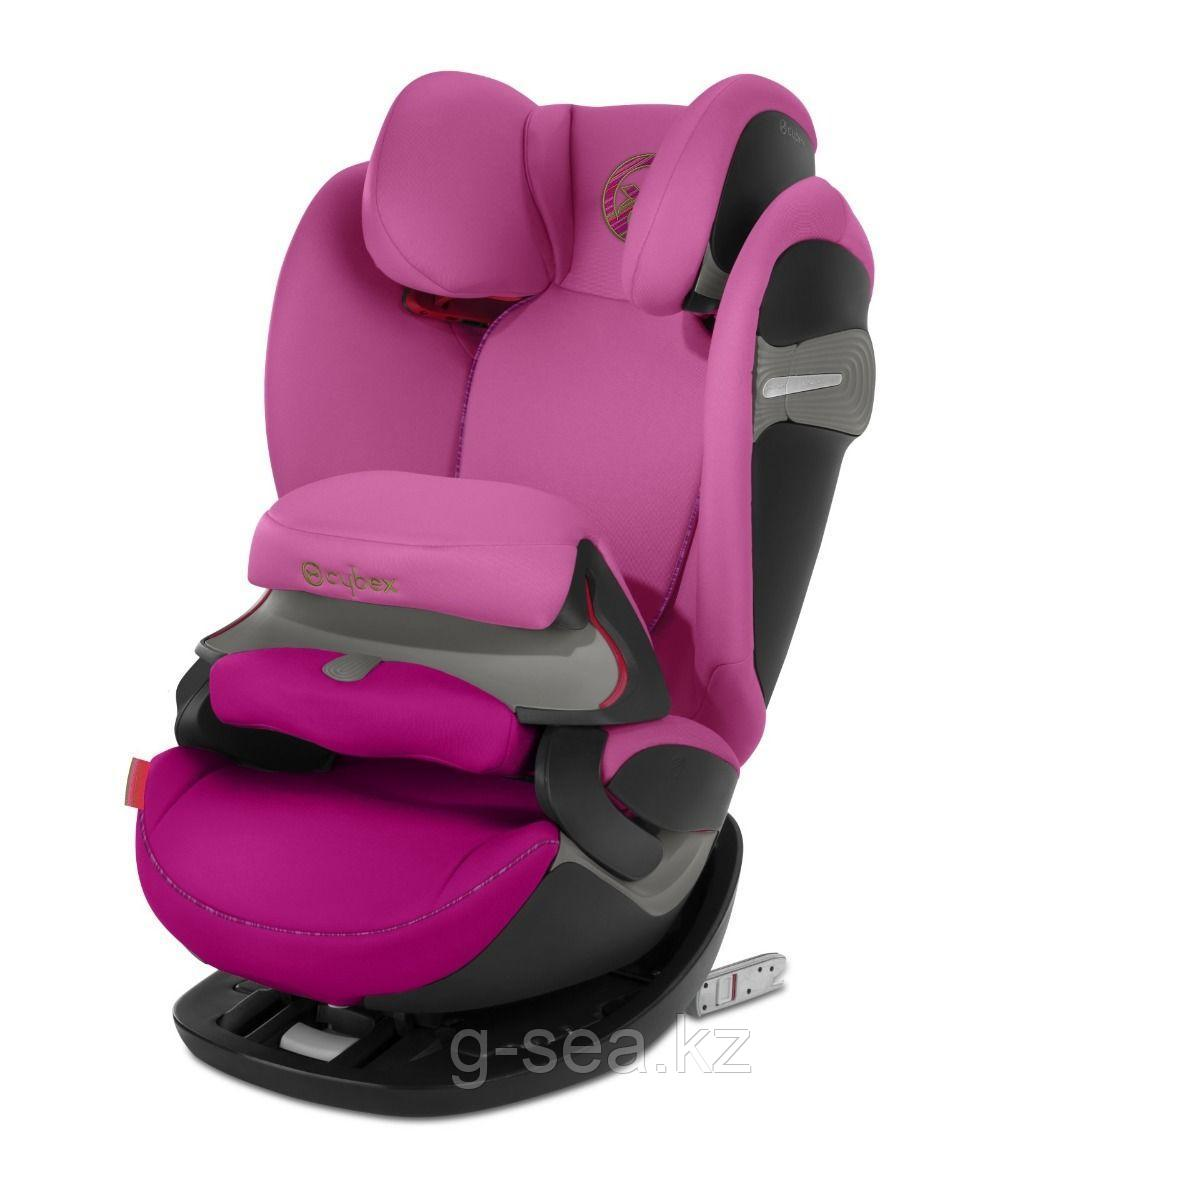 Cybex: Автокресло Pallas S-Fix Fancy Pink (9-36кг) 9м+